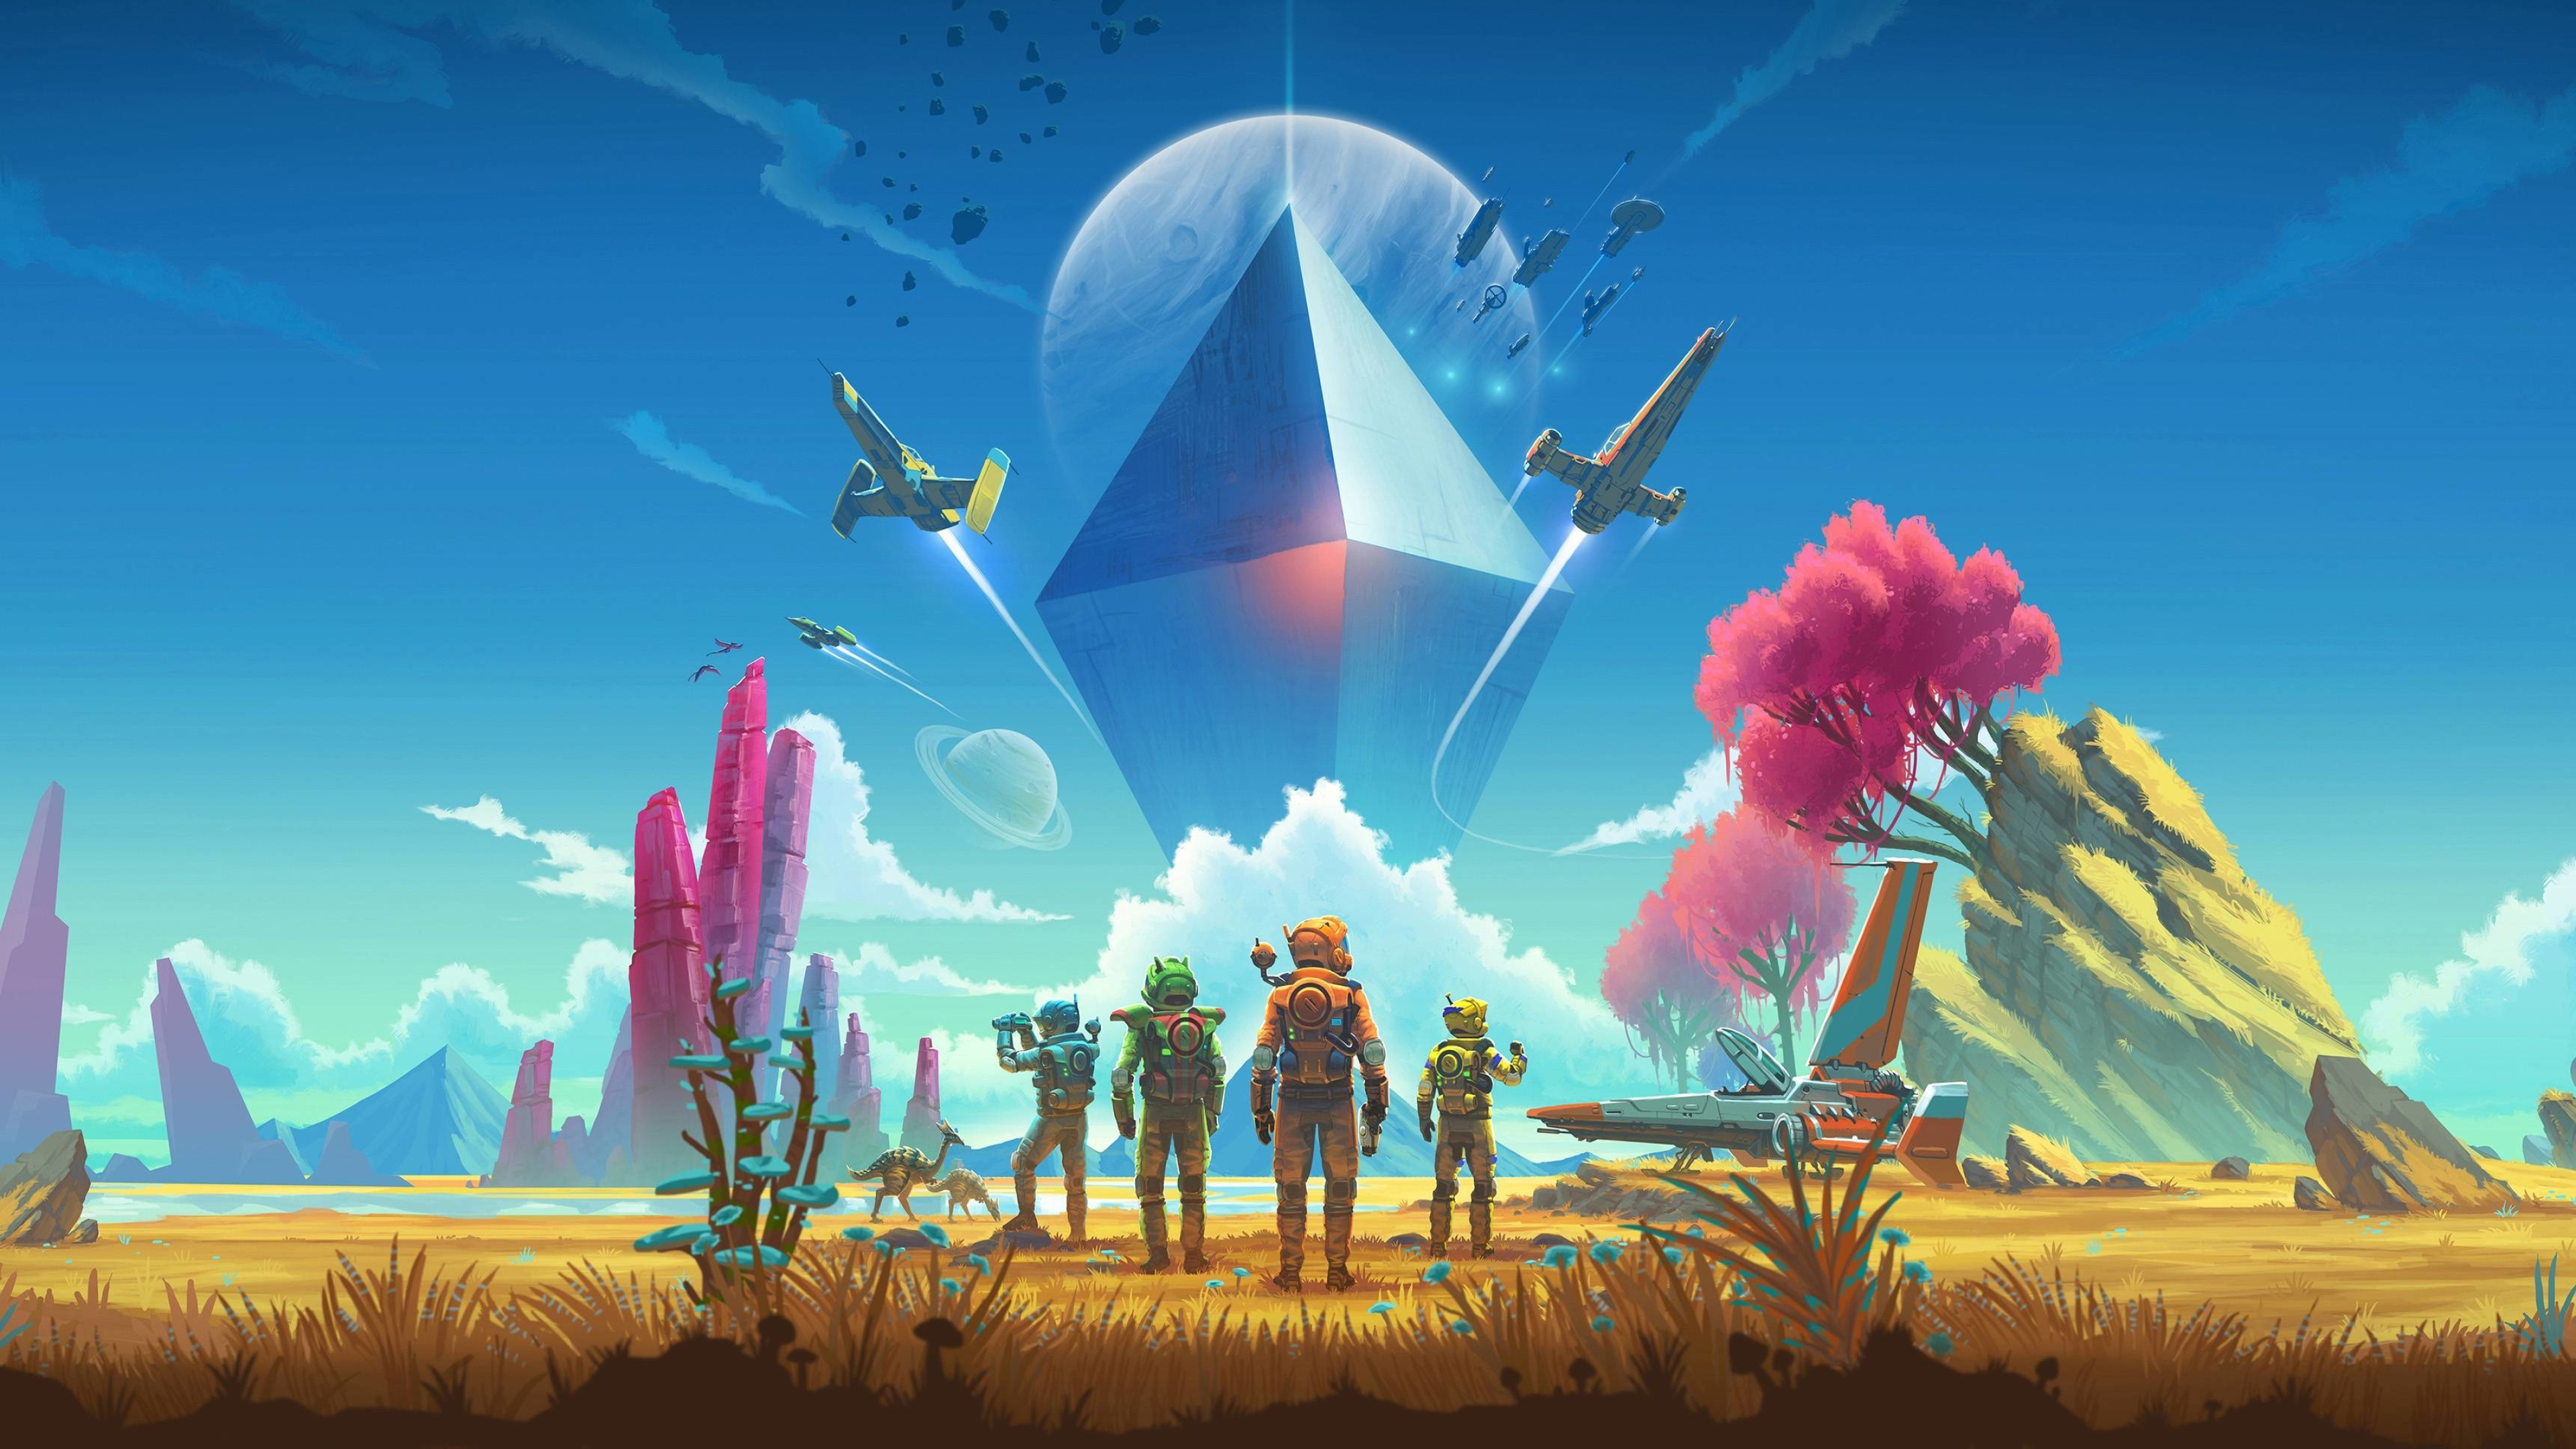 3840x2160 No Man S Sky Game 4k Wallpaper Hd Games 4k Wallpapers Images Photos And Background